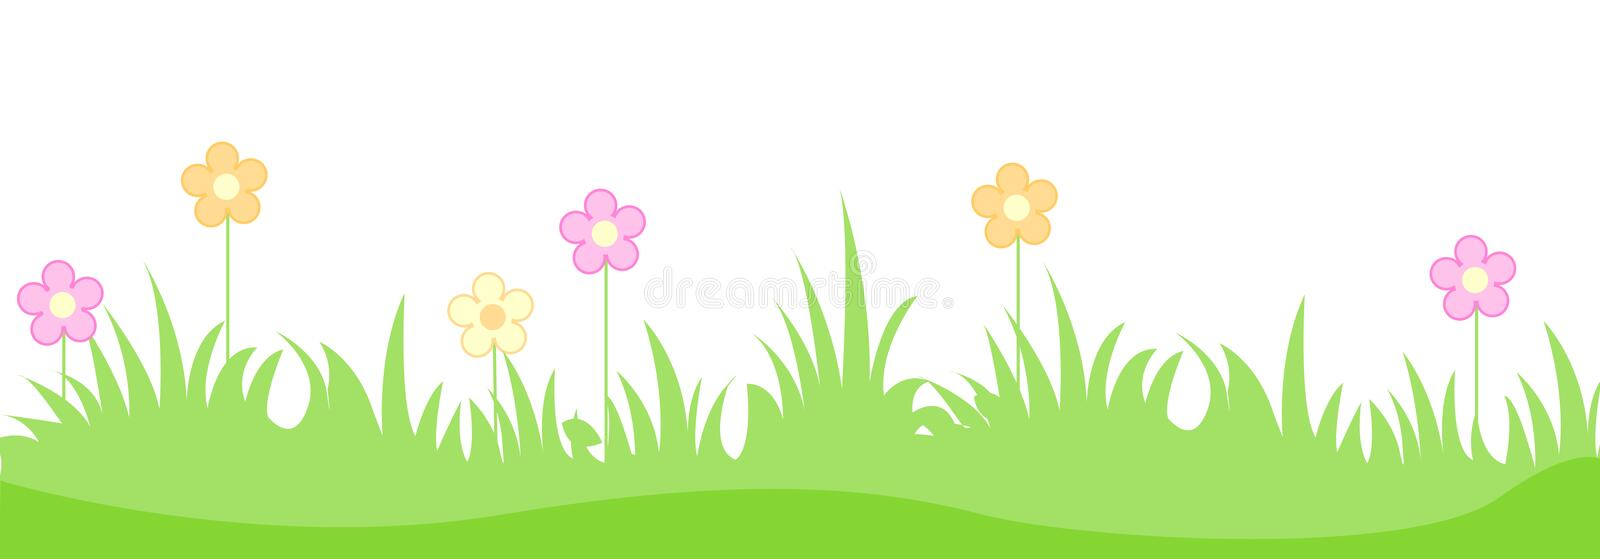 Grass with spring flowers vector illustration